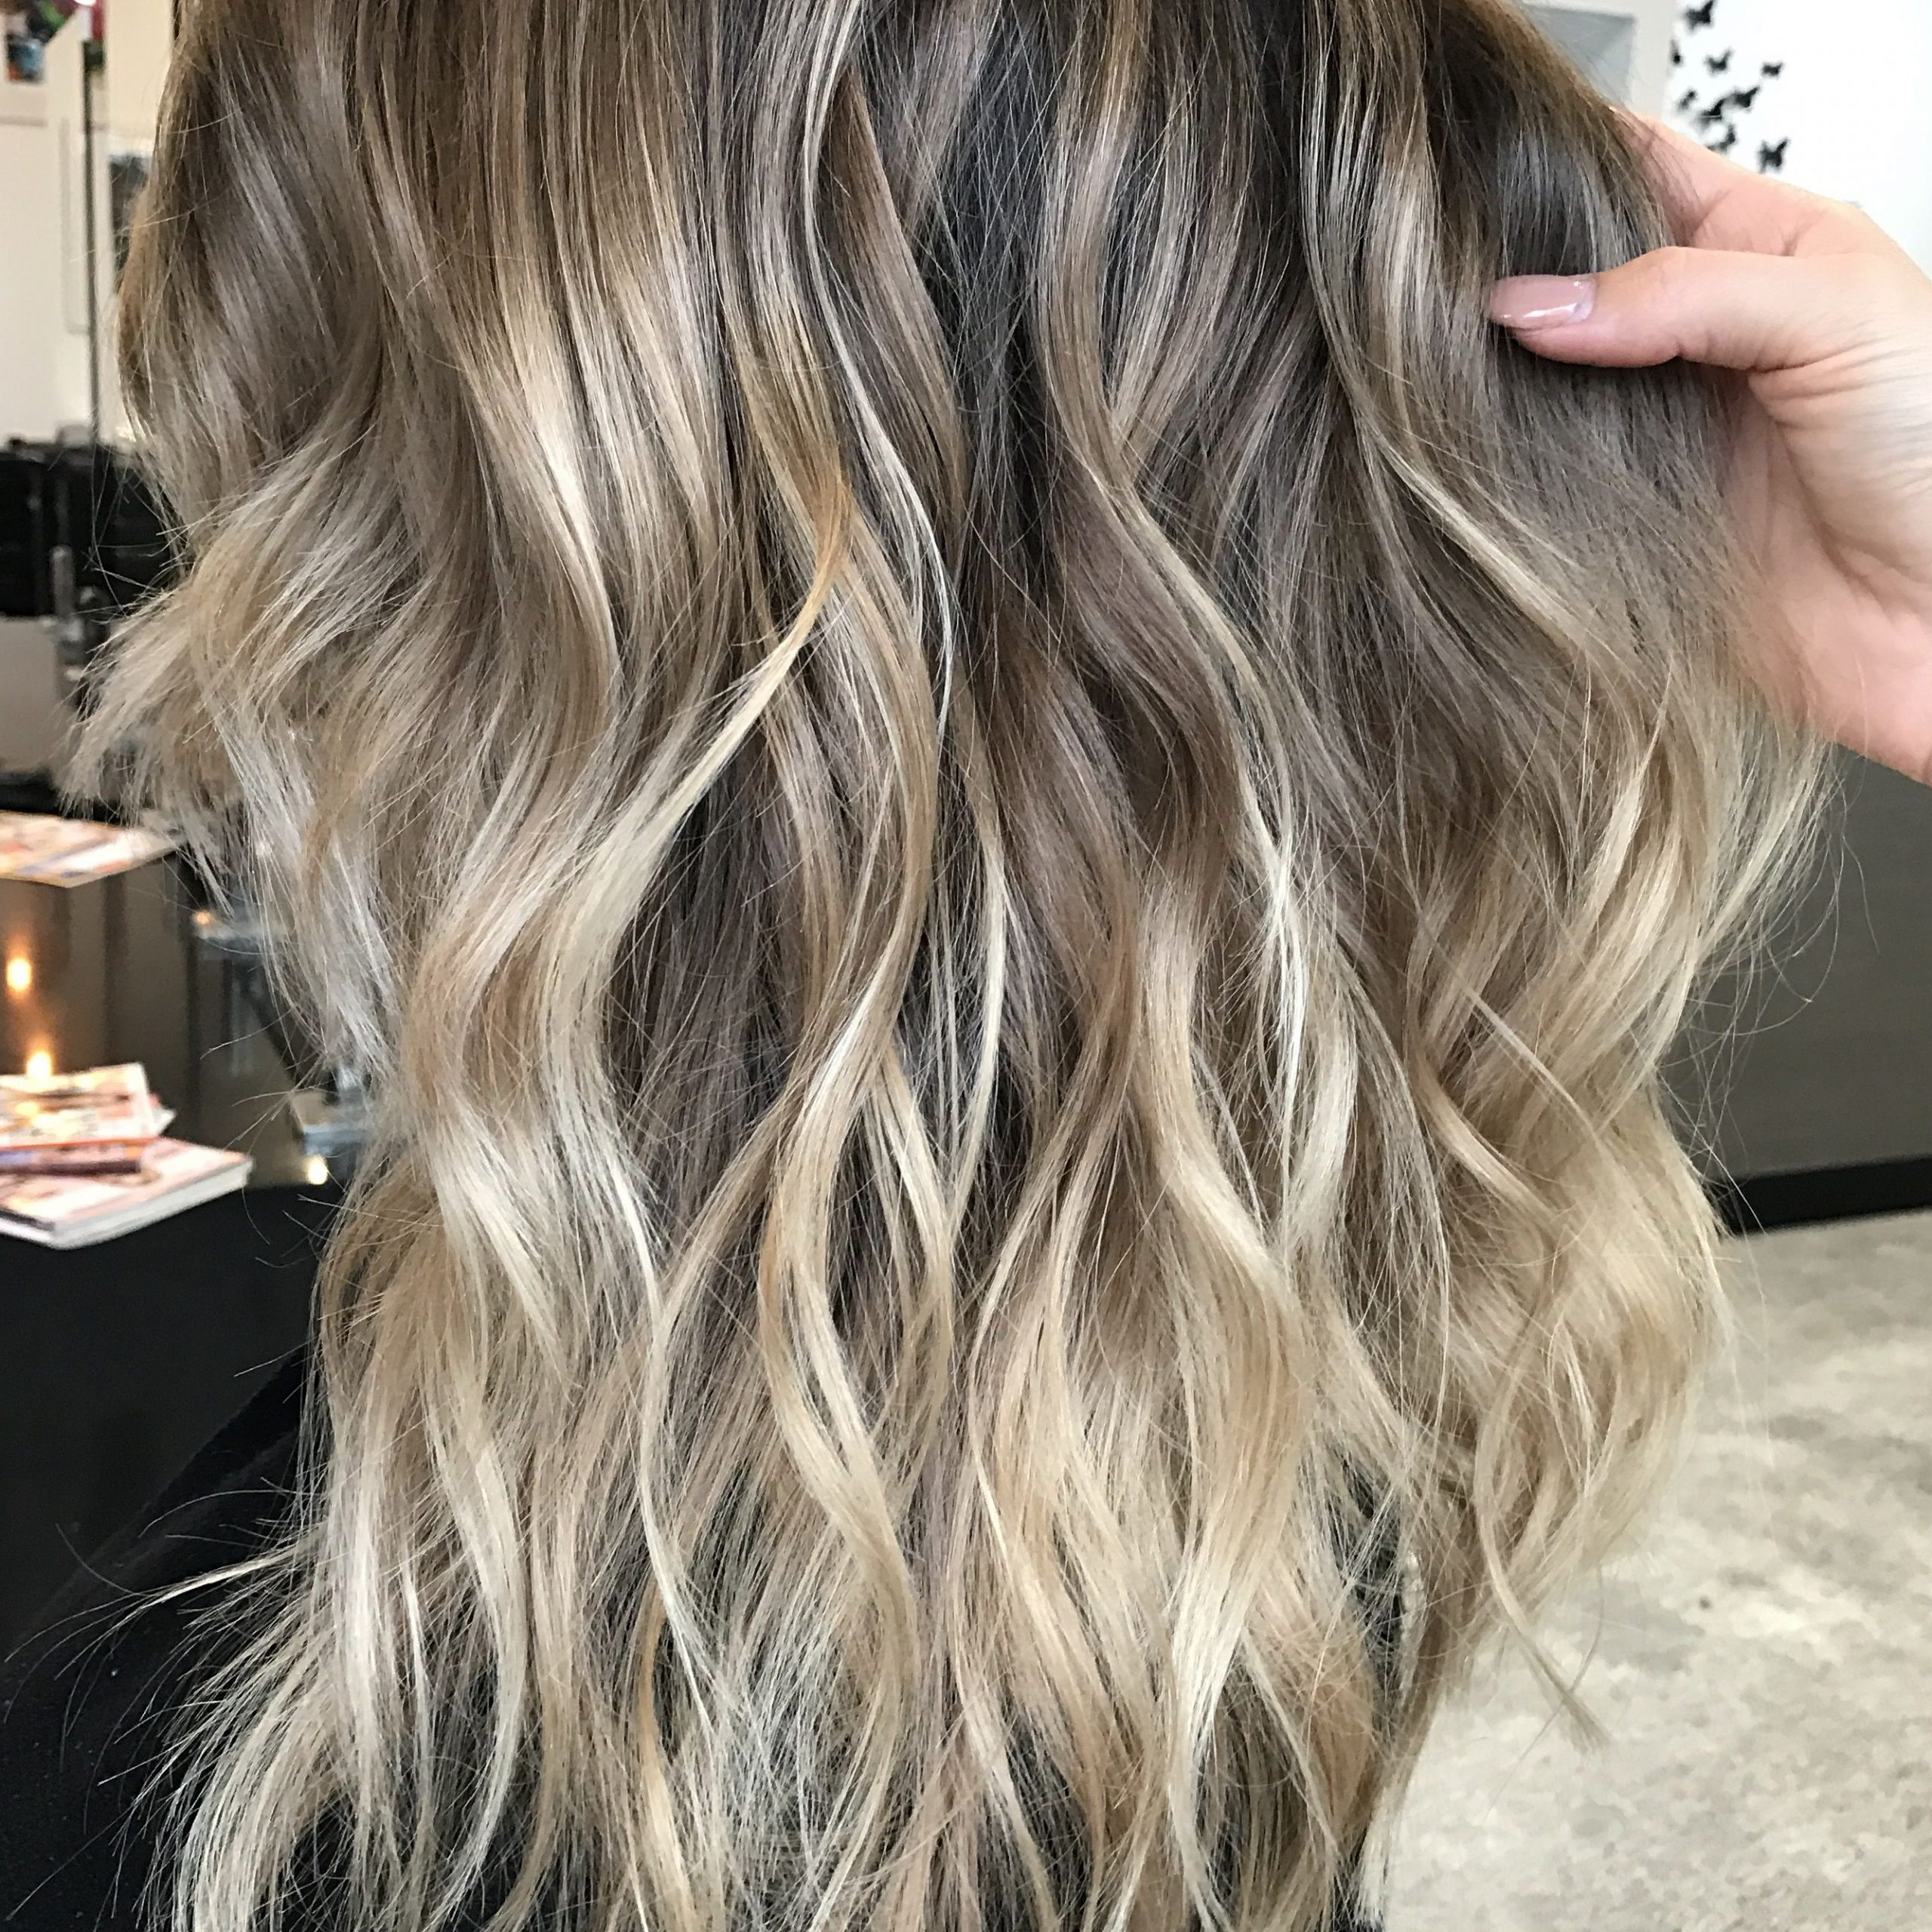 Instagram @hairbykaitlinjade Blonde Balayage, Long Hair With Regard To Most Up To Date Blonde Balayage On Long Voluminous Hairstyles (View 16 of 20)